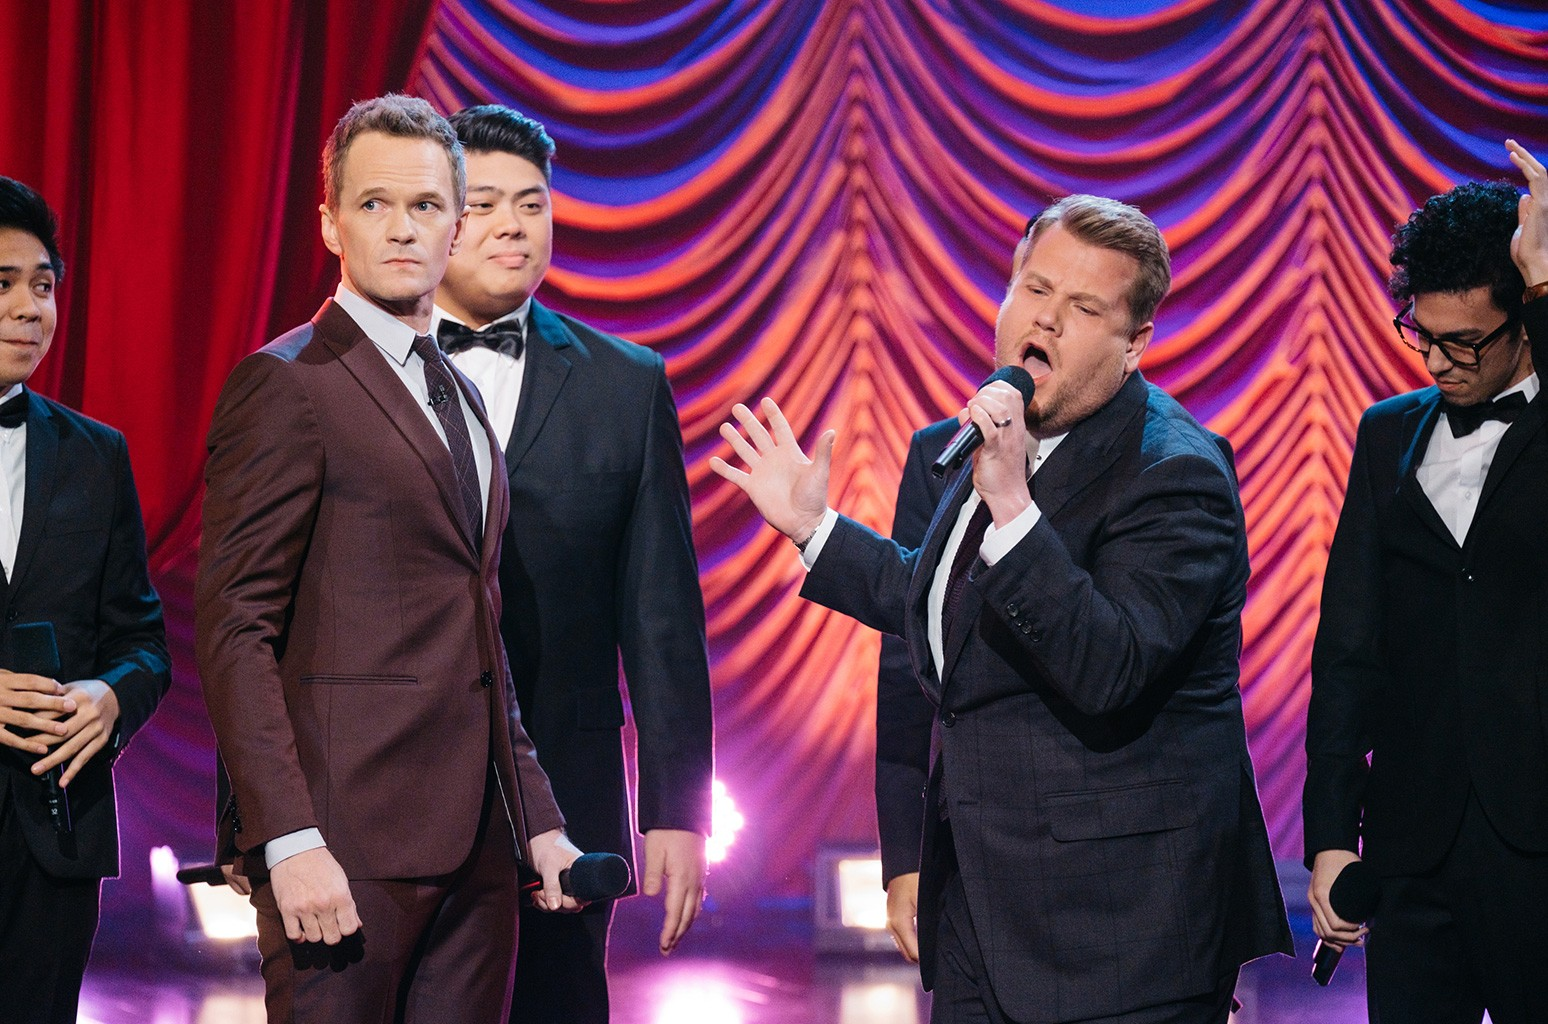 Neil Patrick Harris on 'The Late Late Show with James Corden' on Jan. 9, 2017.